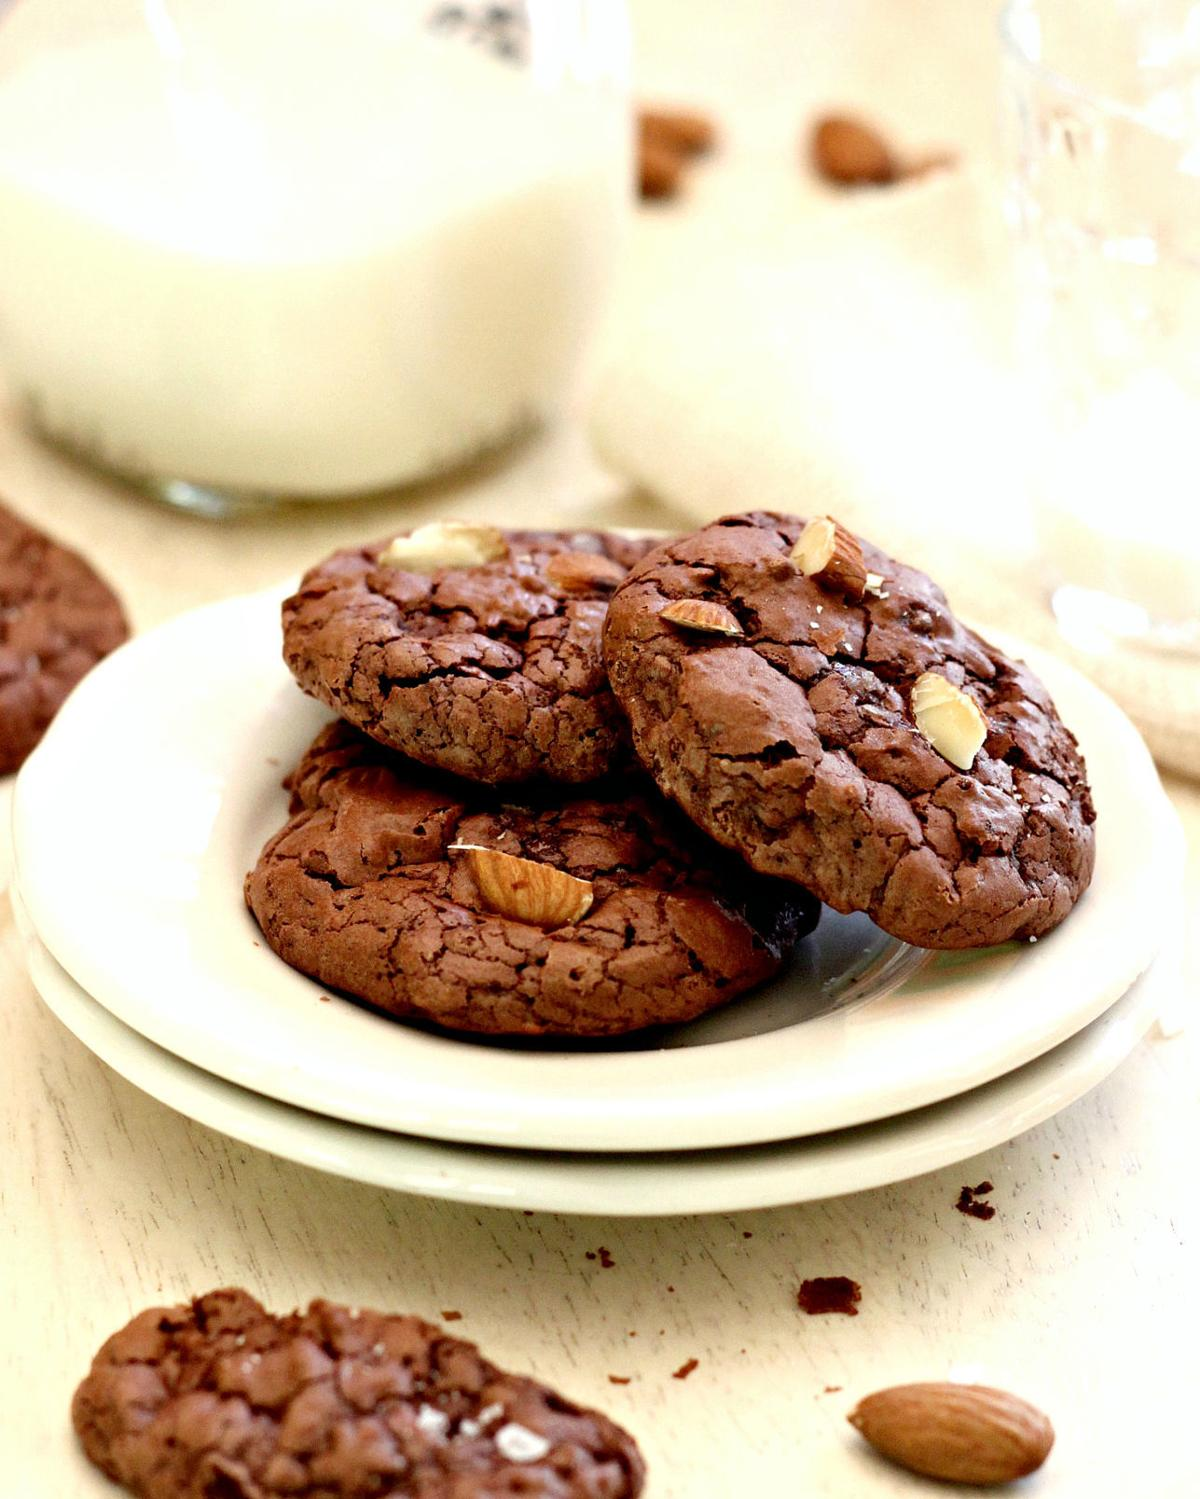 Chocolate Crinkle Cookies With Toasted Almonds and Sea Salt